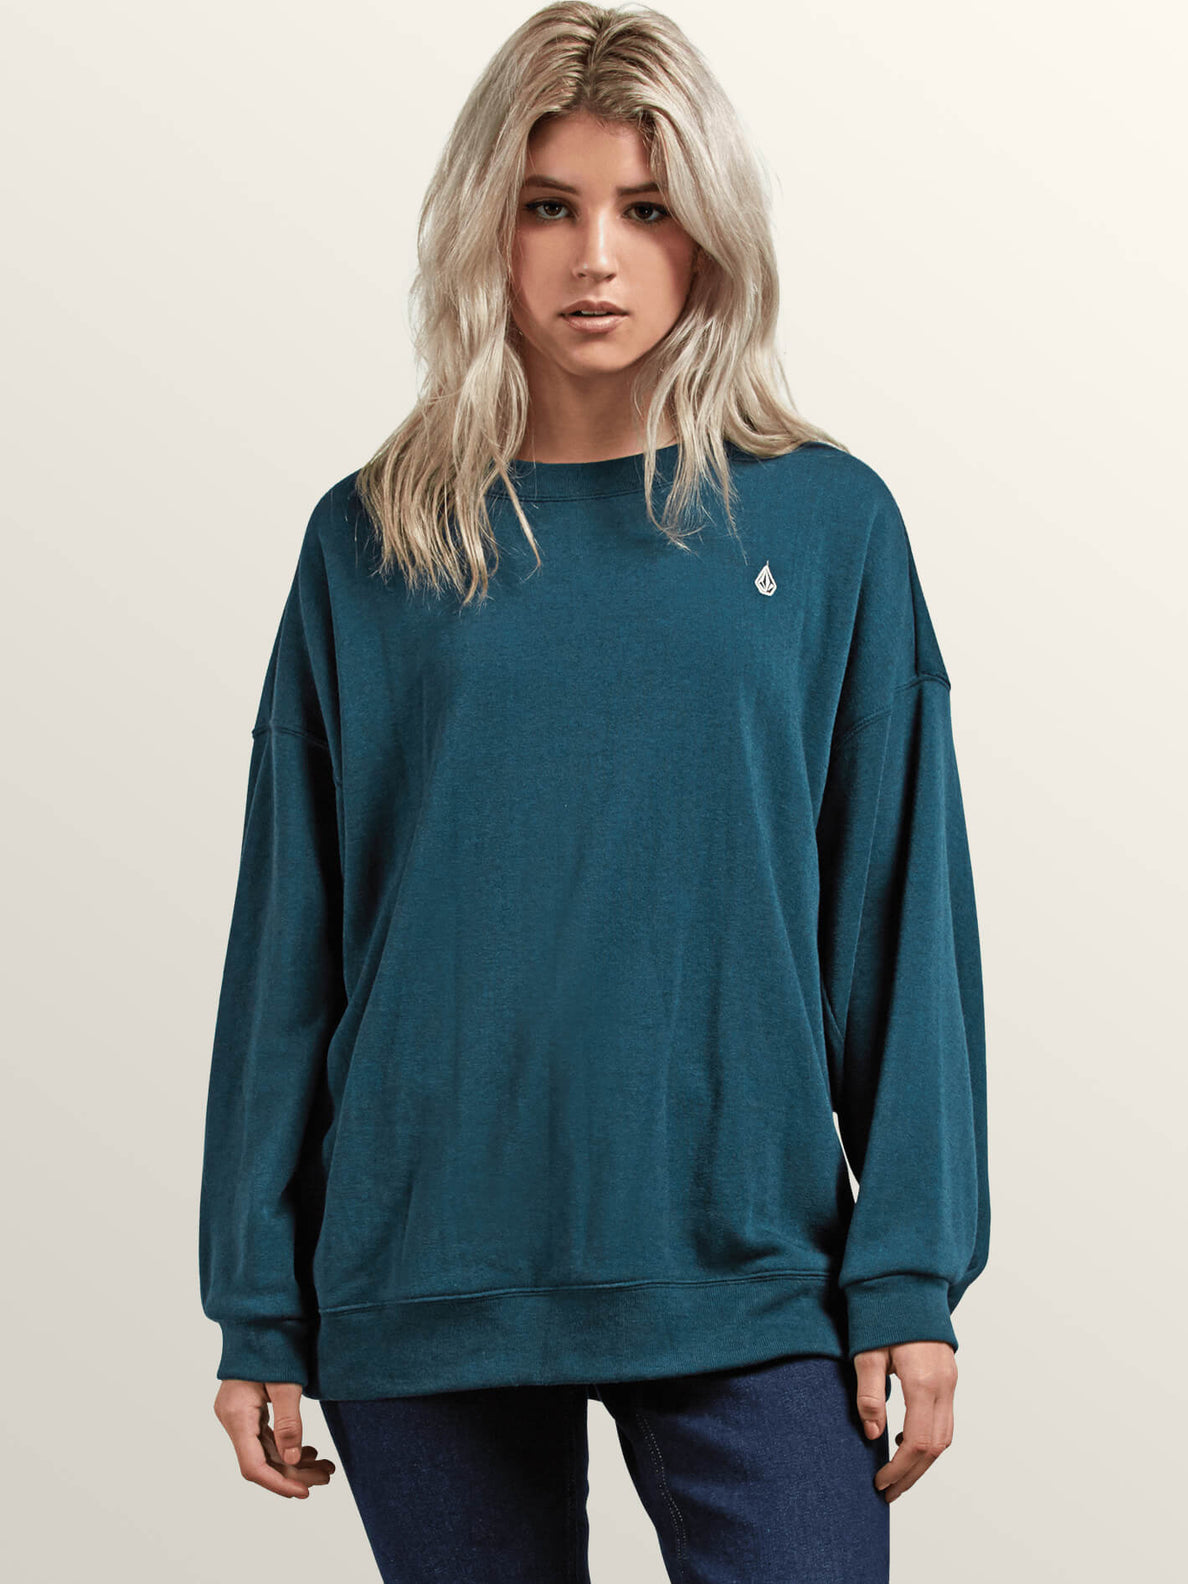 Darting Traffic Crew Sweatshirt In Evergreen, Front View